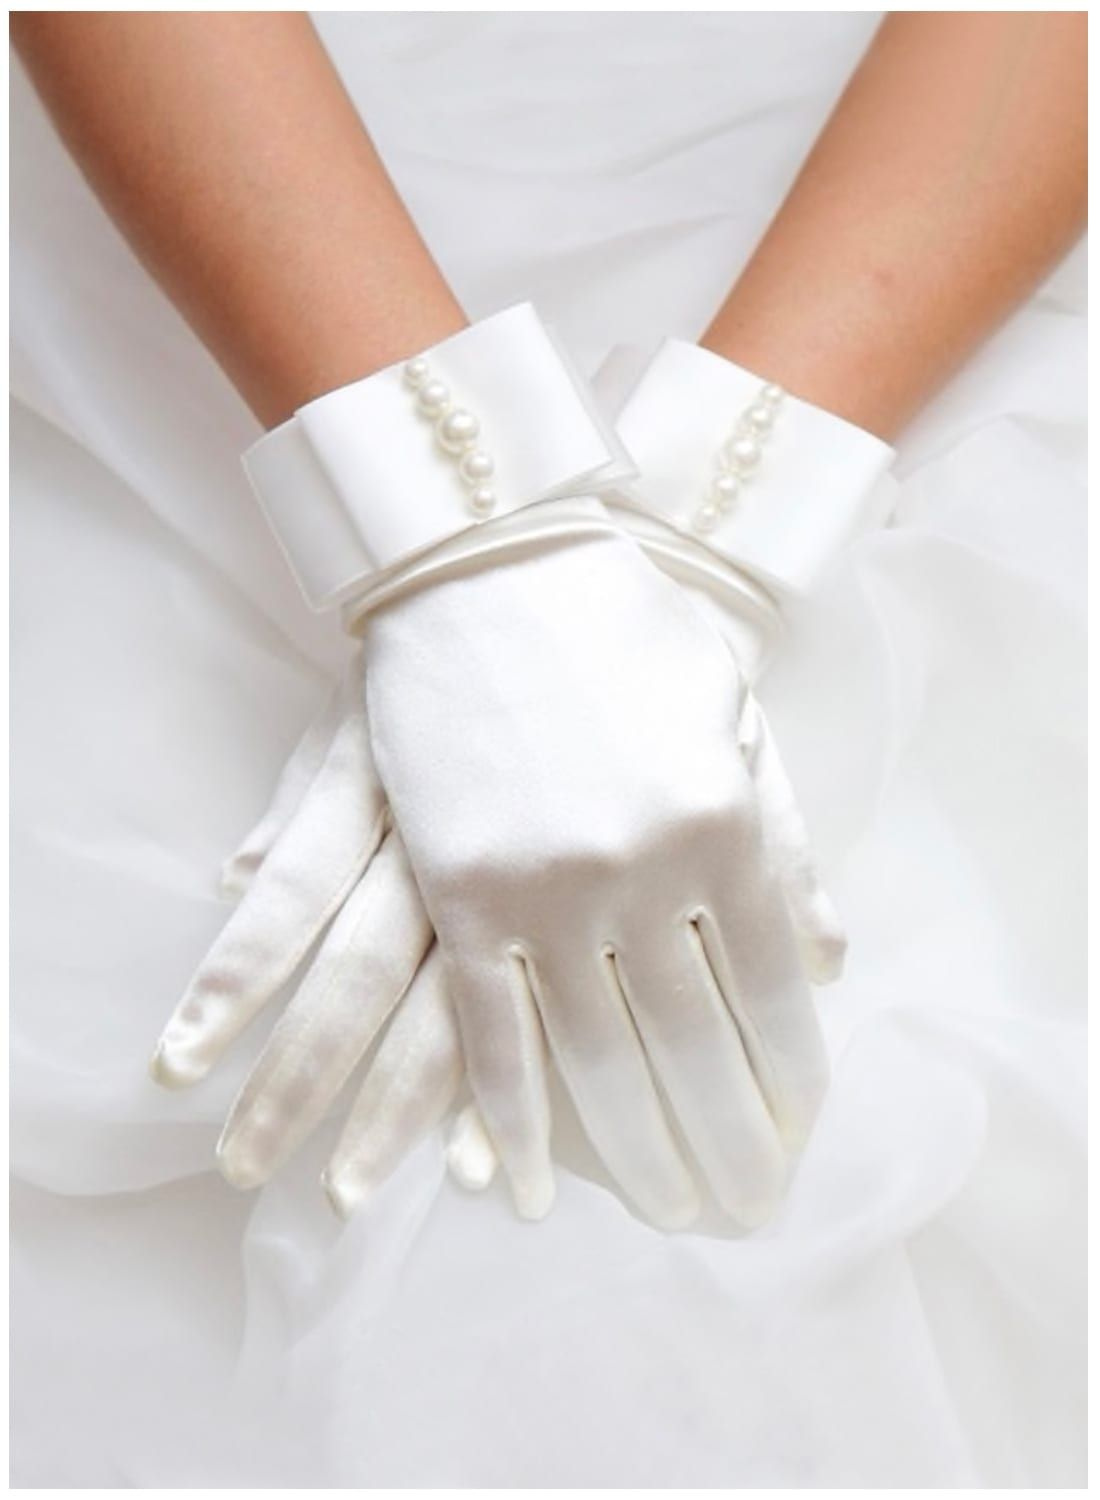 Vintage Style White Satin Gloves - British Retro